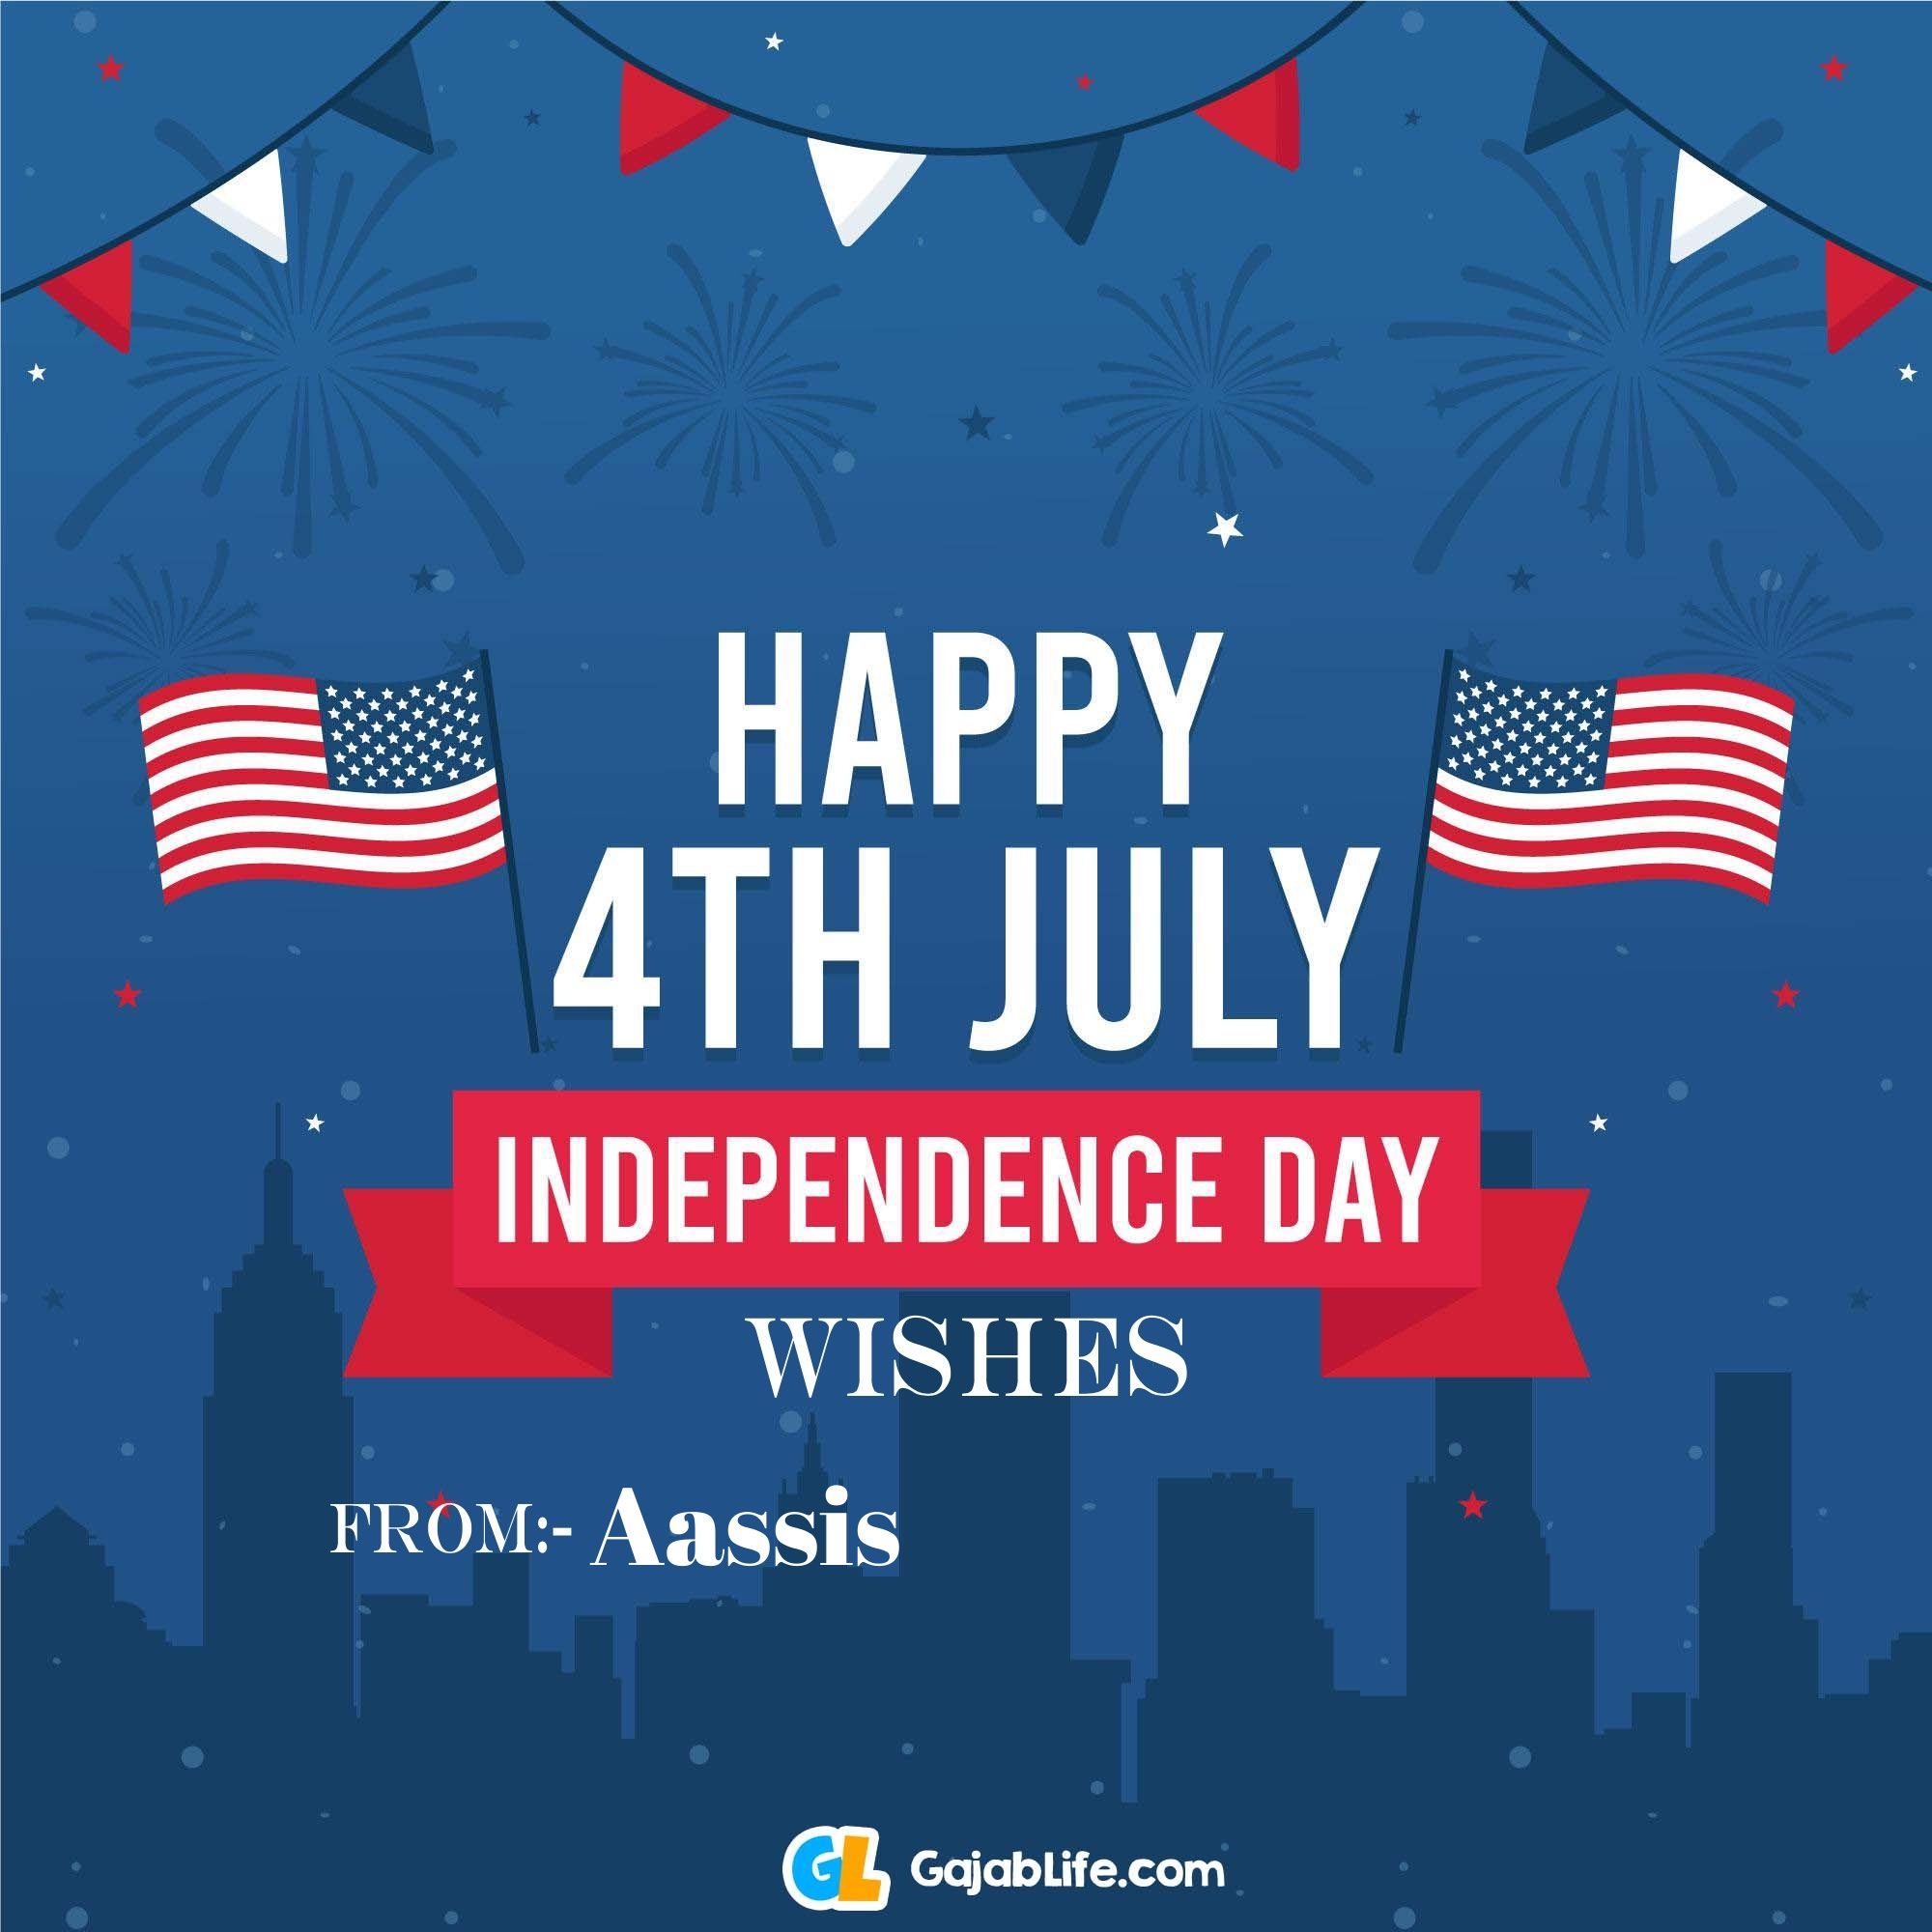 Aassis happy independence day united states of america images